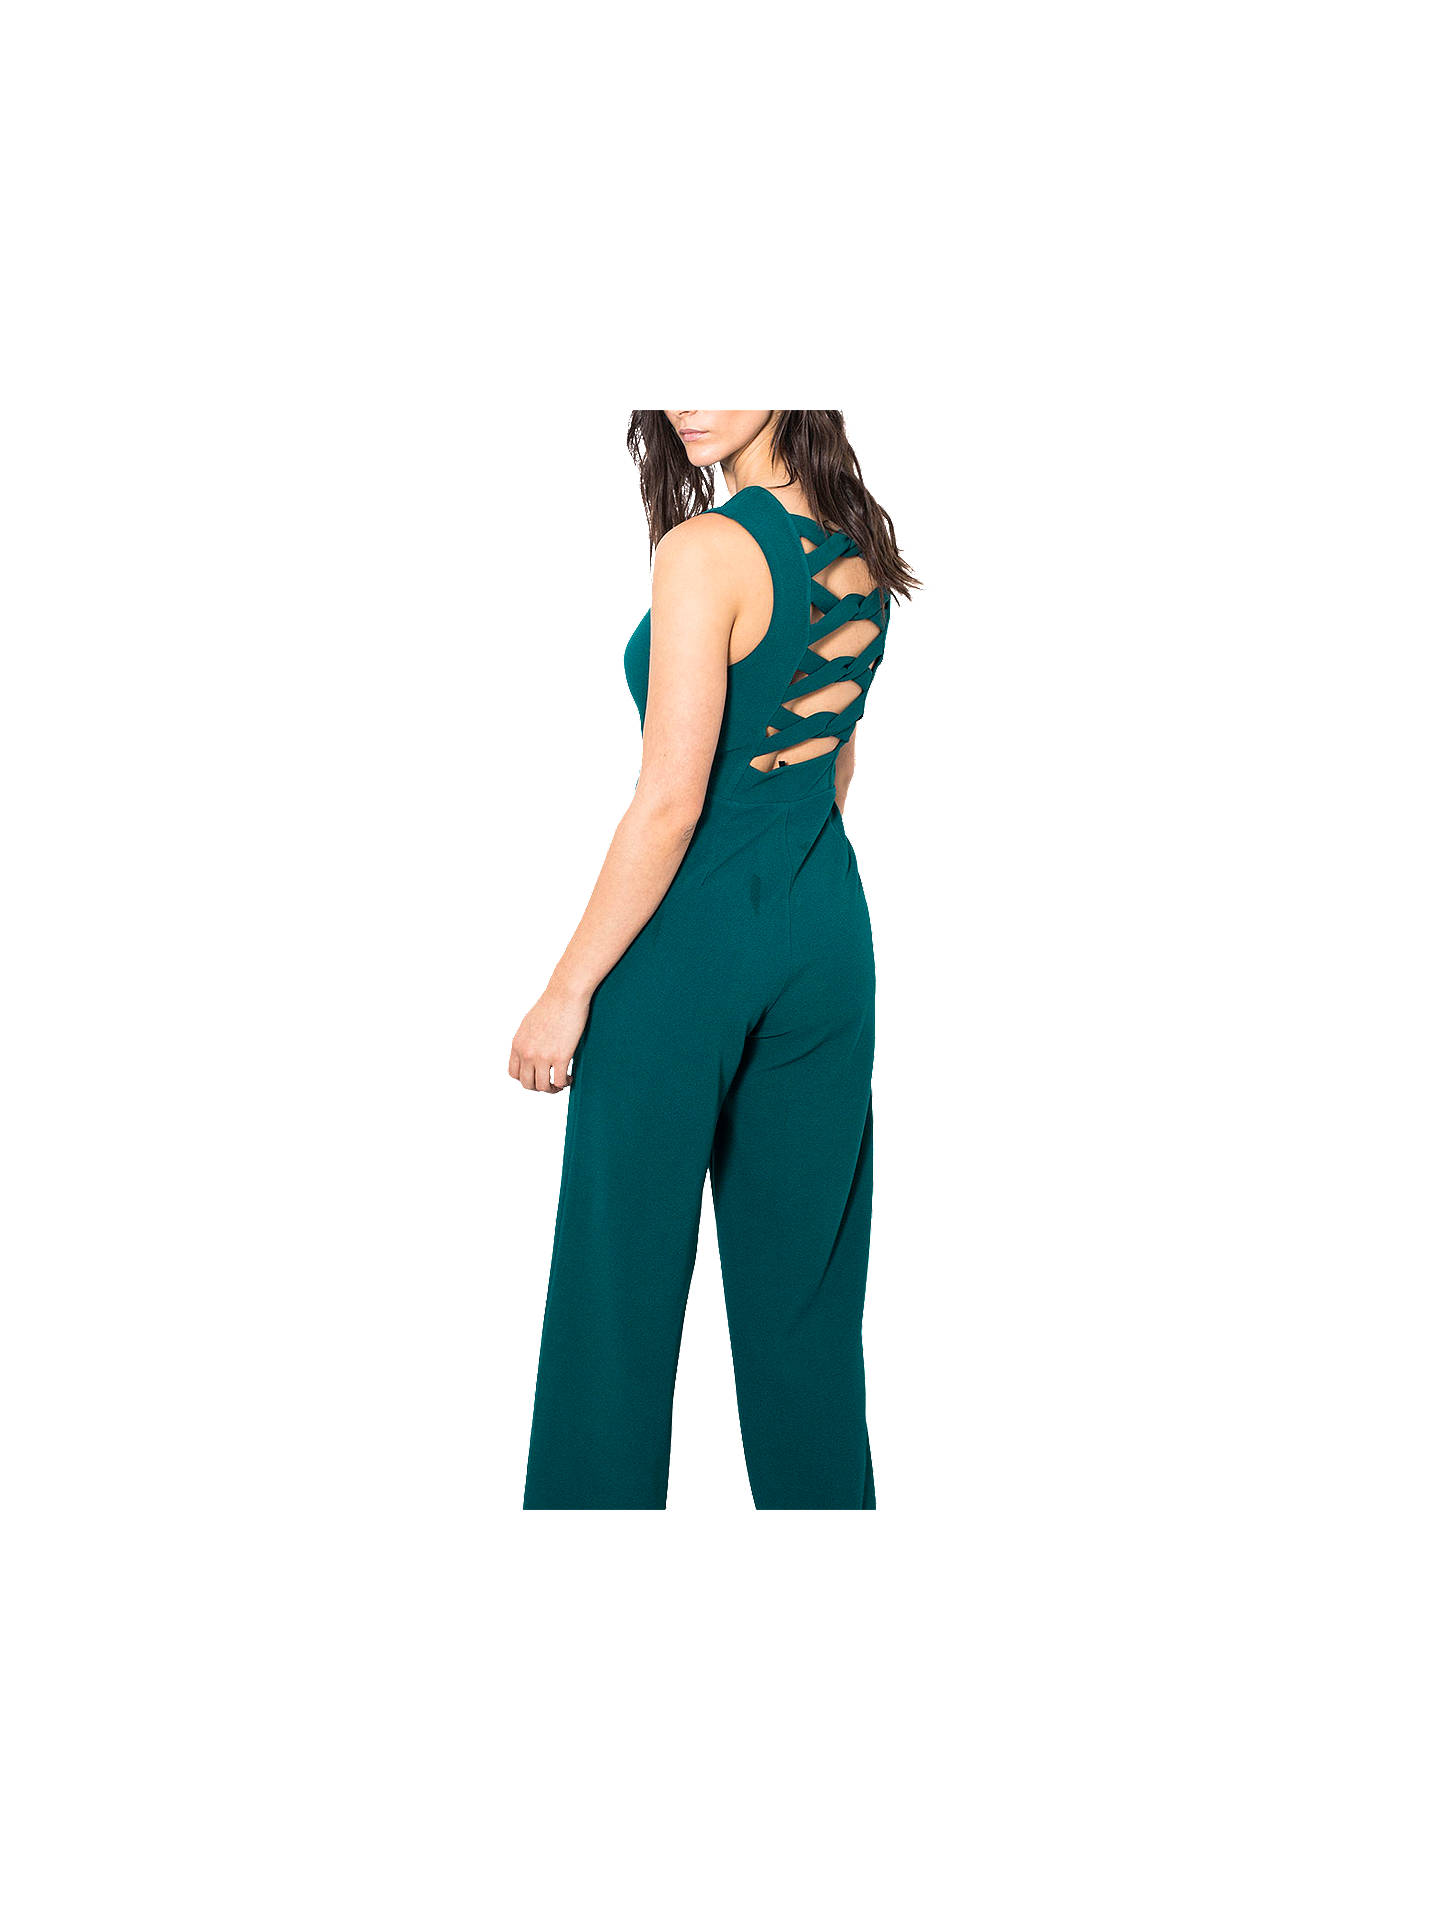 a4b9c2851aad ... Buy Wild Pony Tie Back One Piece Wide Leg Jumpsuit